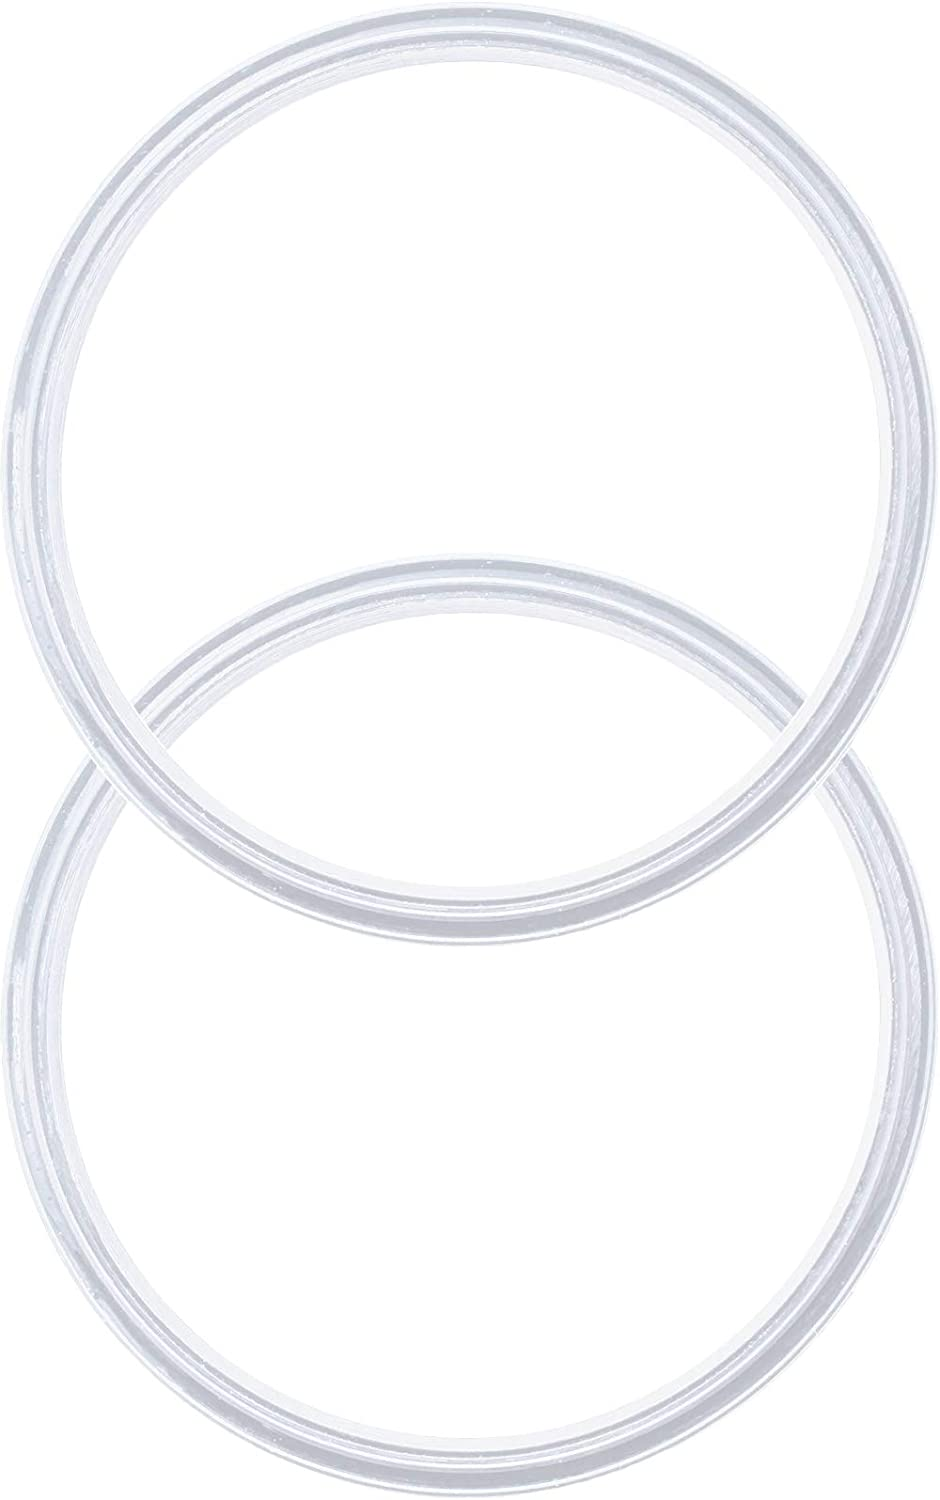 Pack of 2-12 oz Replacement Silicon Lid Ring, Gasket Seals, Lid for Insulated Stainless Steel Wine Tumblers, Cups Vacuum Effect, fits on Renowned Brands - White Model 2020…